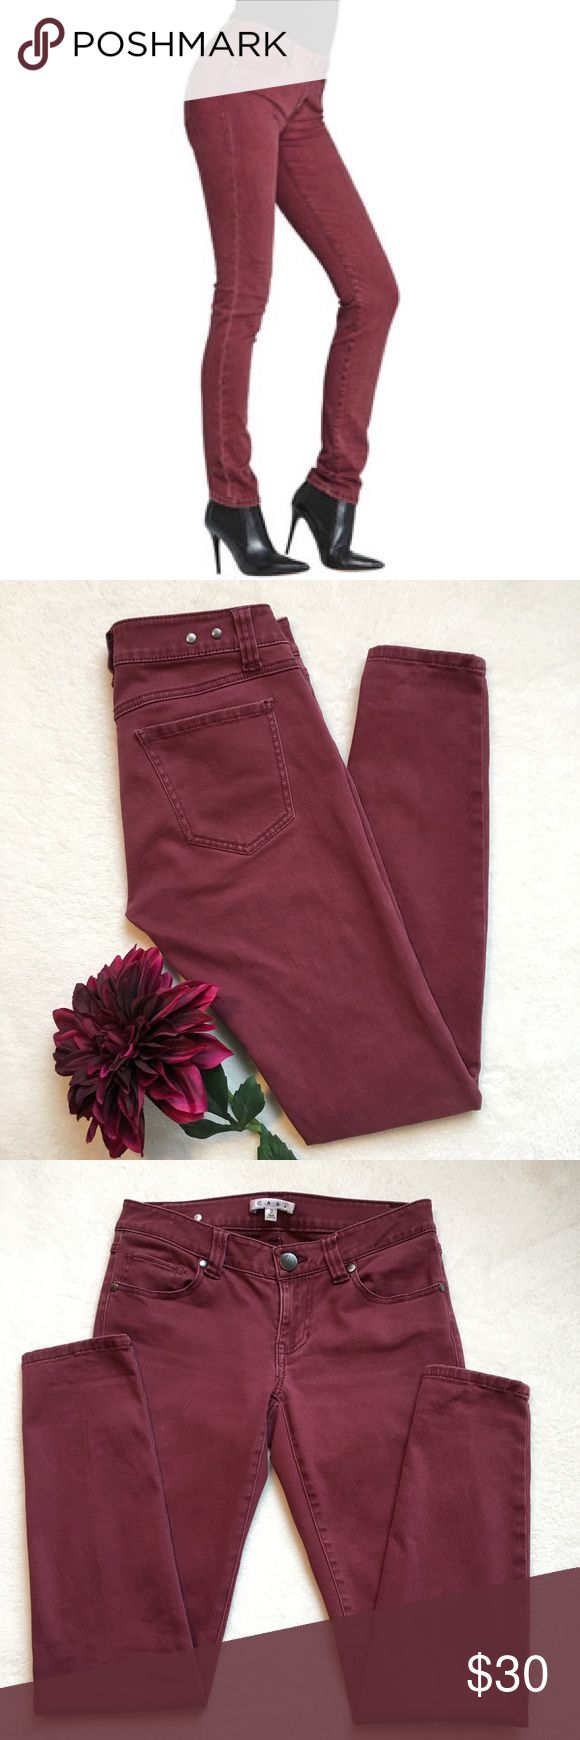 """{CAbi} Bordeaux Skinny Jeans CAbi Bordeaux skinny jeans. A cotton blend softens these flattering skinny jeans, rendered in a sophisticated hue. 15"""" flat across waist. 7"""" front rise. 30"""" inseam. 90% cotton 8% elasterell 2% spandex. Good preloved condition. CAbi Jeans Skinny"""